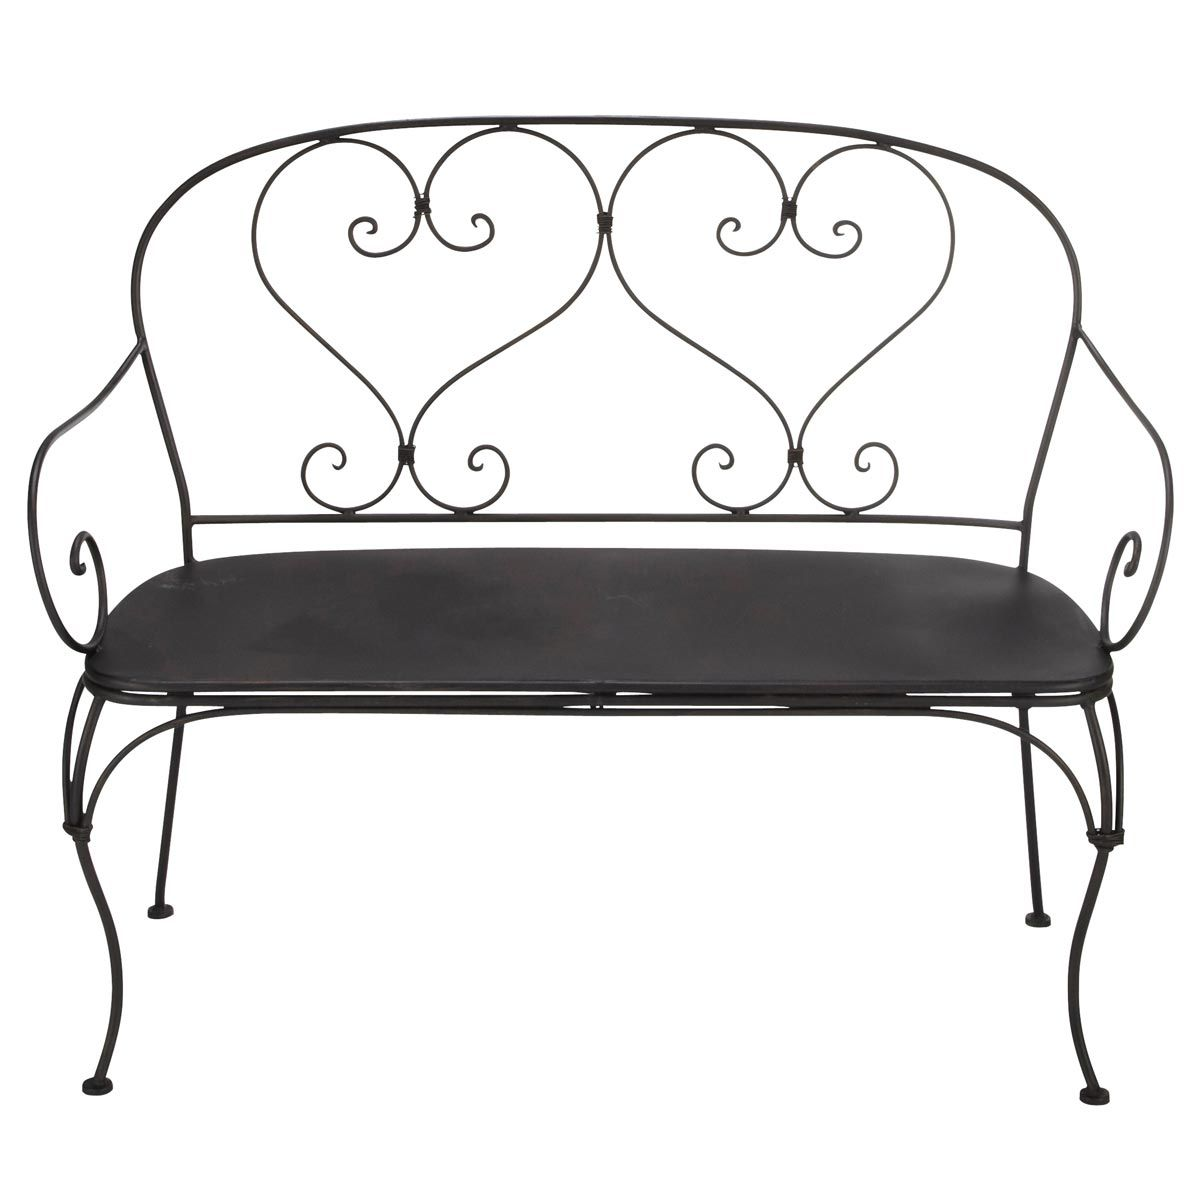 Mobilier de jardin | Home sweet home | Patio bench, Wrought iron ...